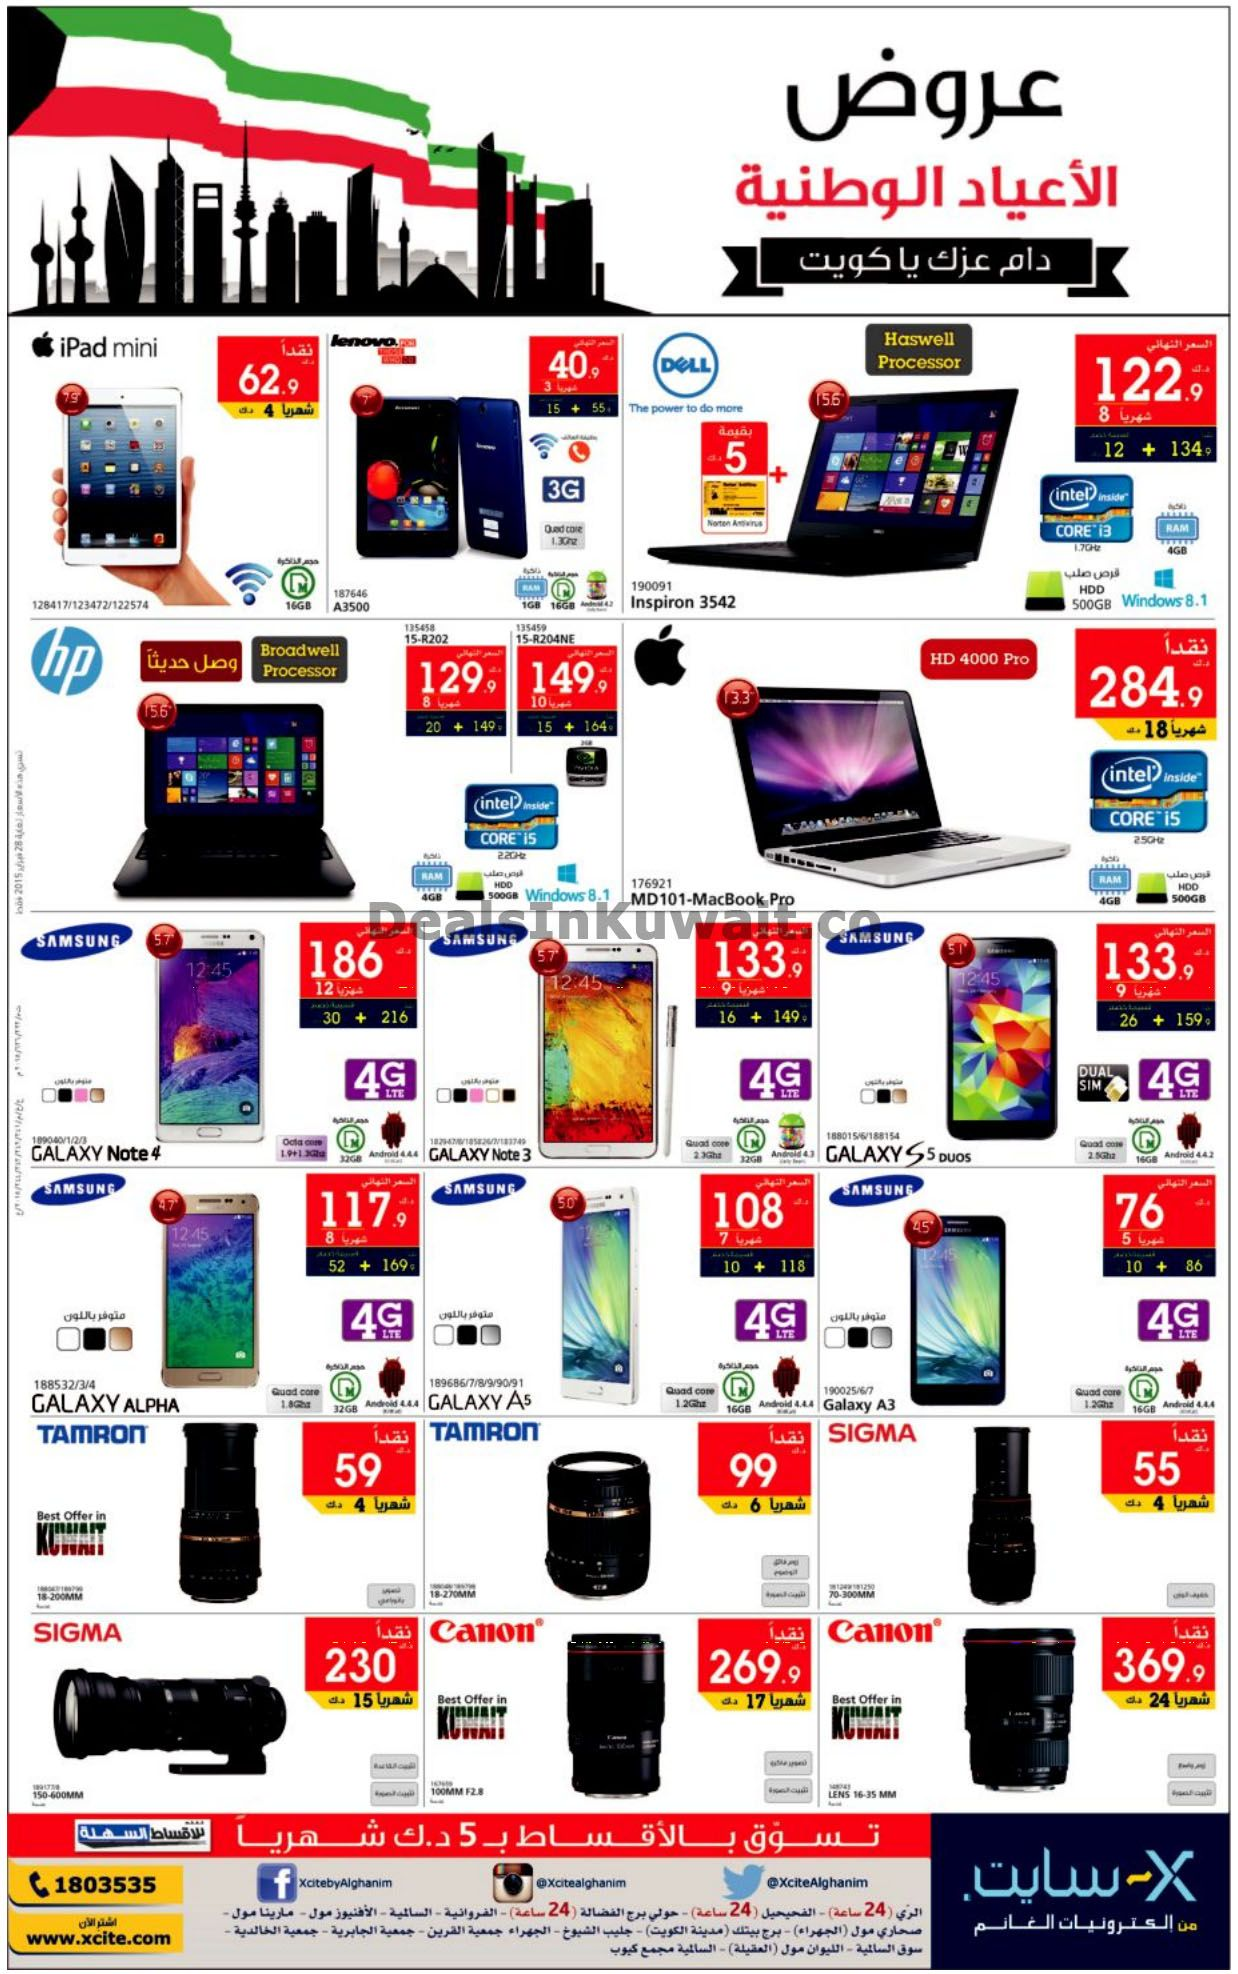 Offers on Tablet, Laptop, Smartphones and Camera Lens at ...